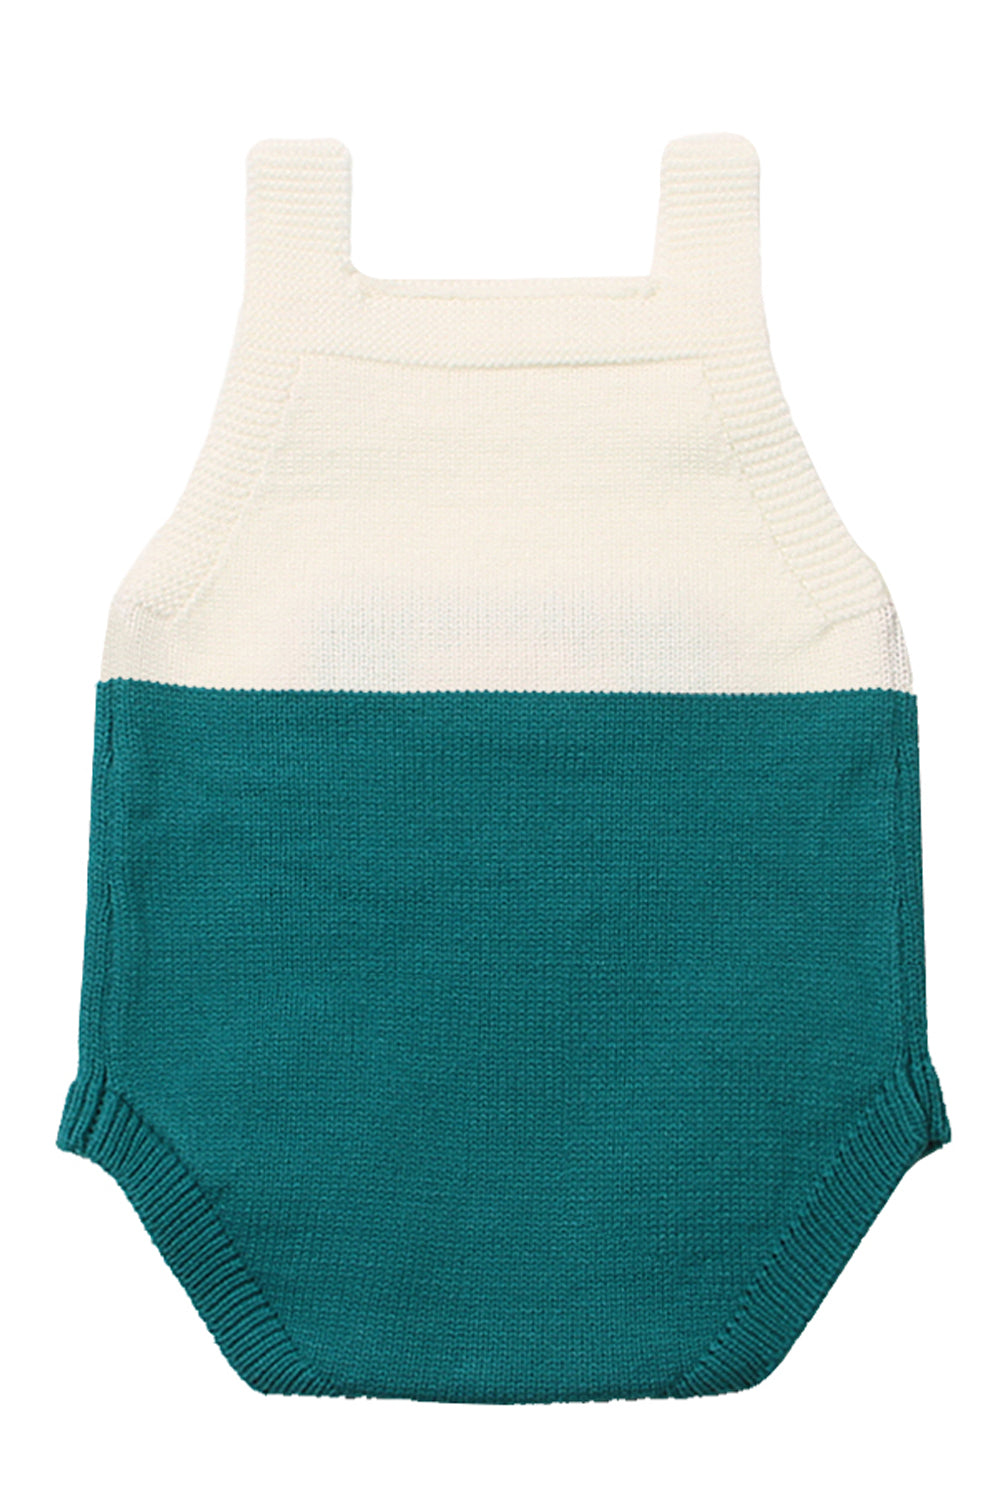 Mint Little Mouse Cotton Bodysuit Sleeveless Baby Suit